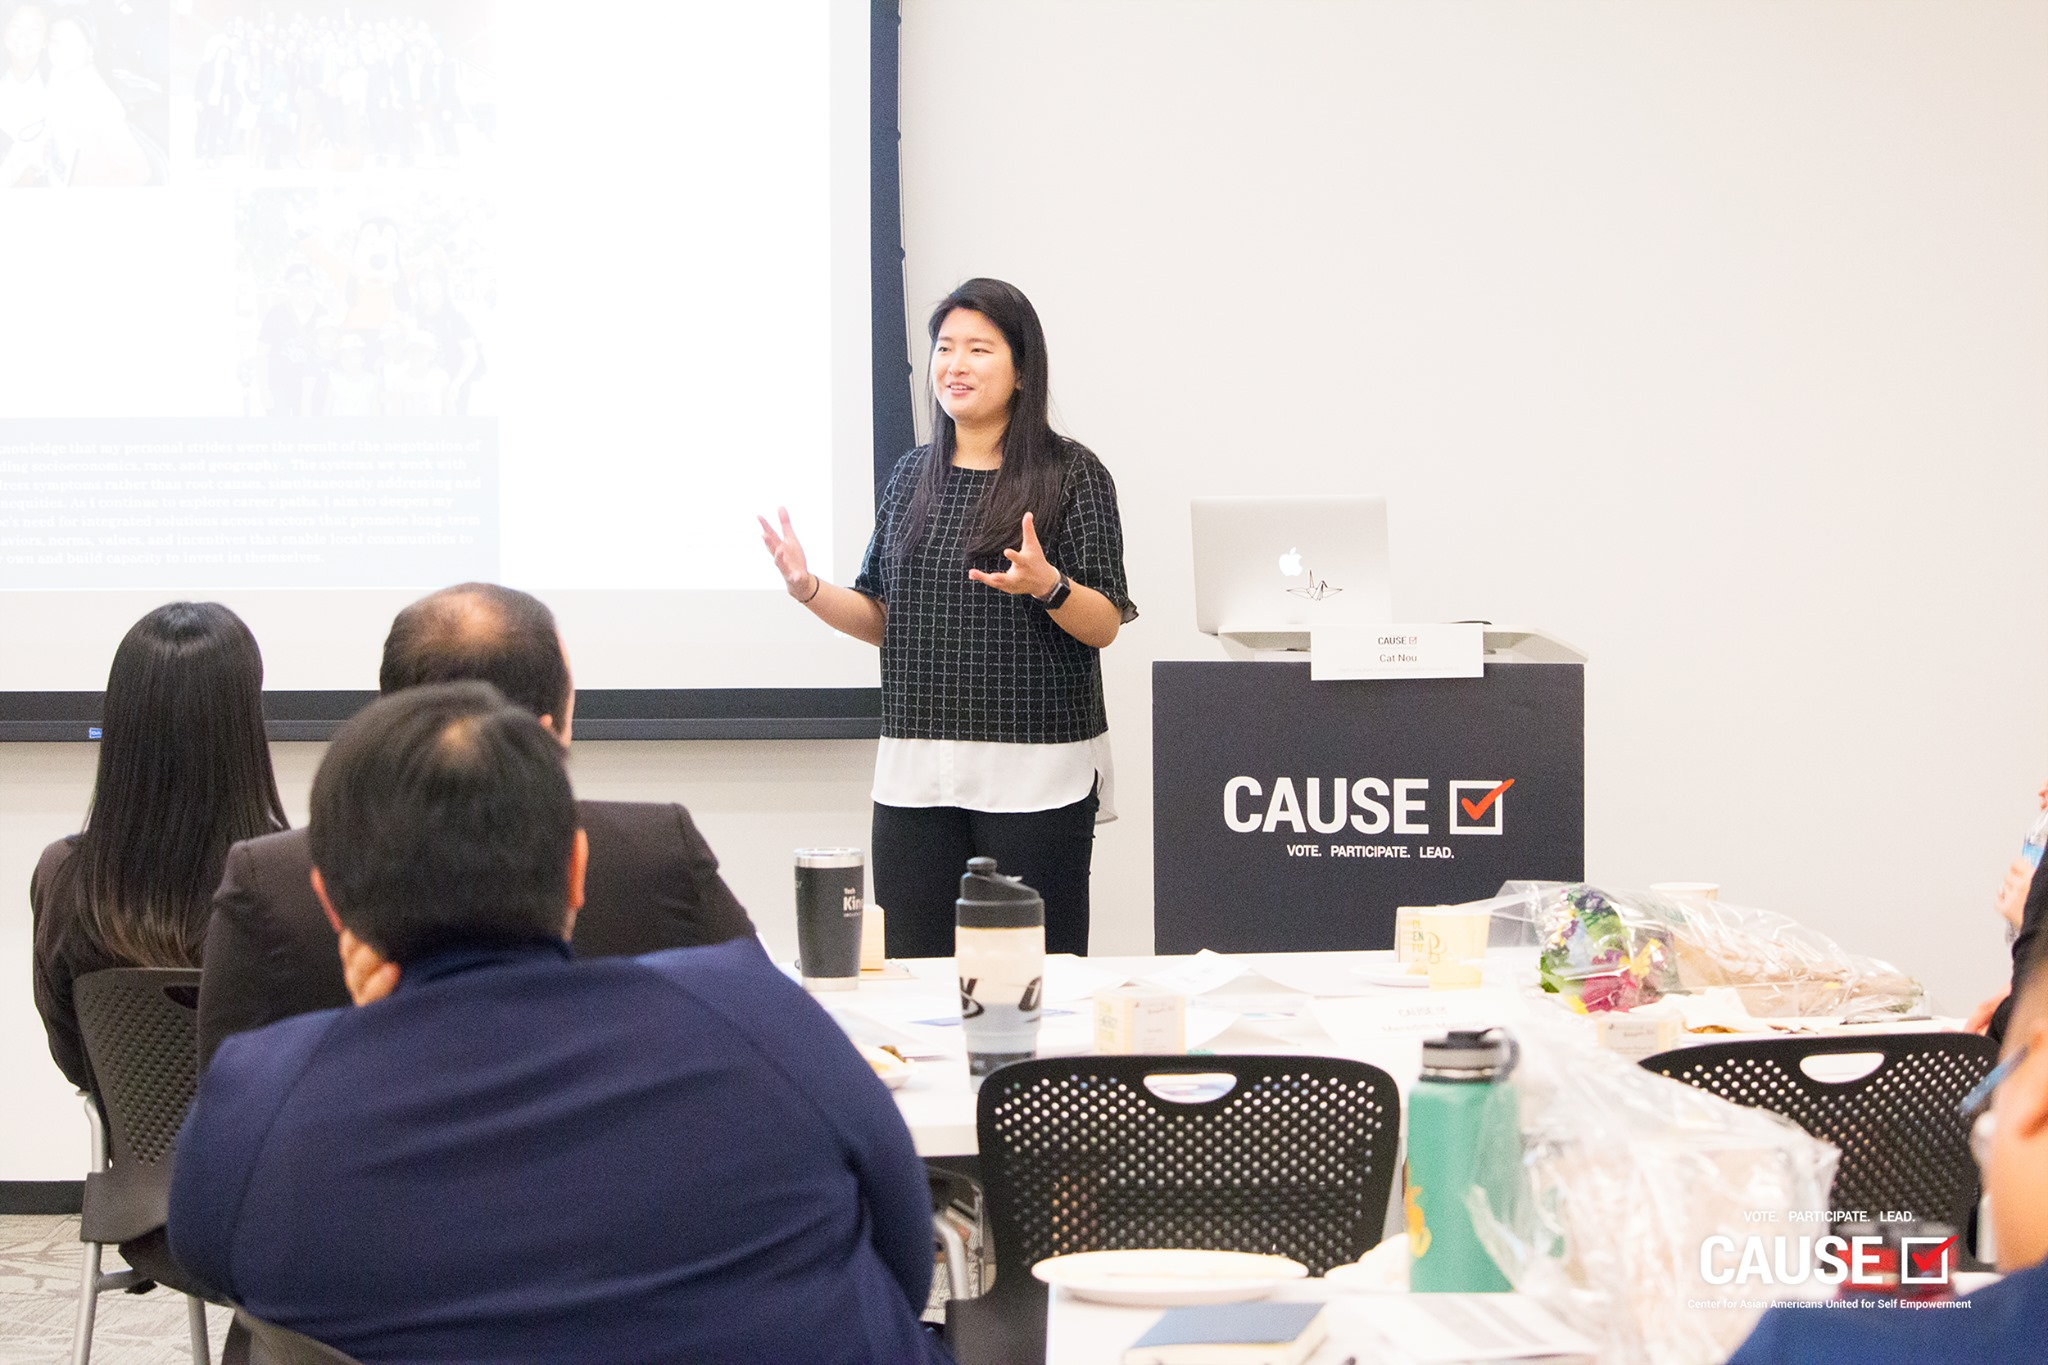 Eileen Ung of the 2019 CAUSE Leadership Institute